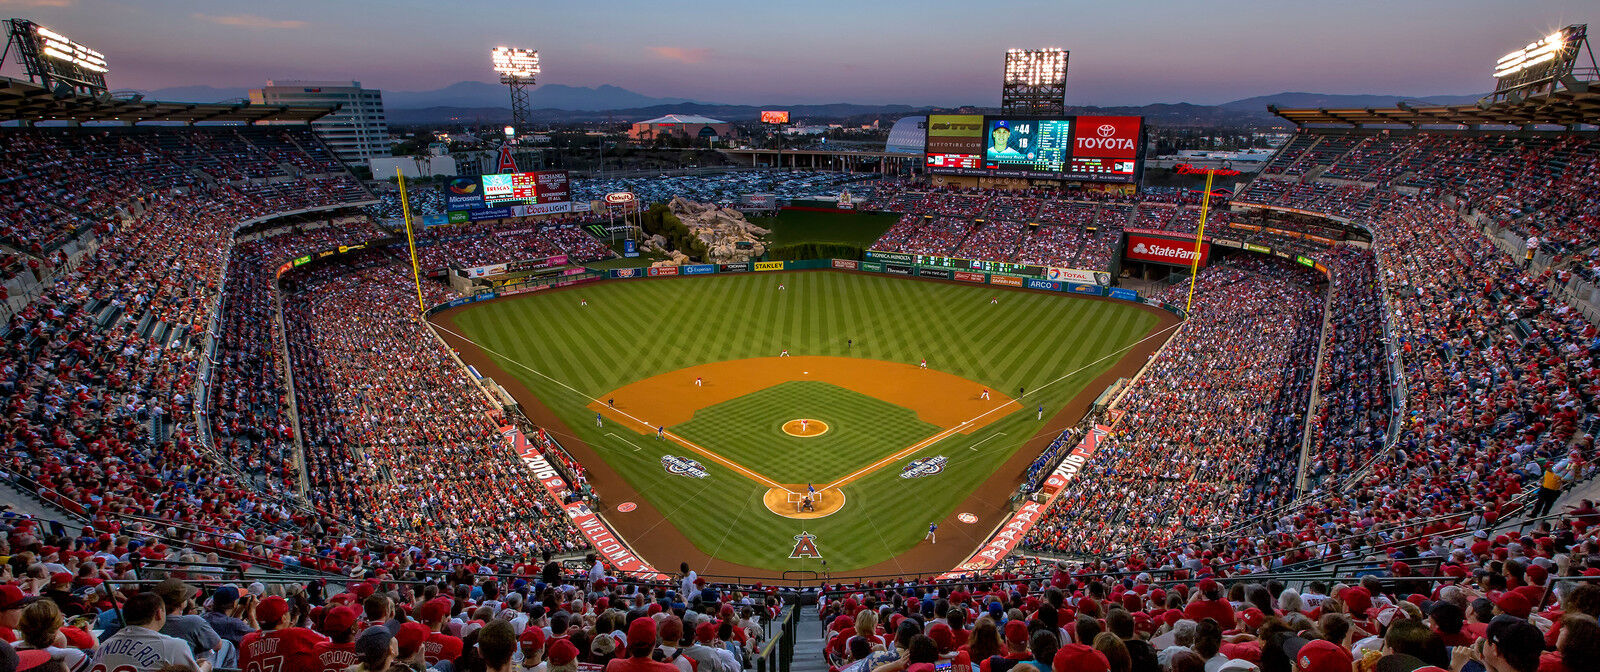 Toronto Blue Jays at Los Angeles Angels